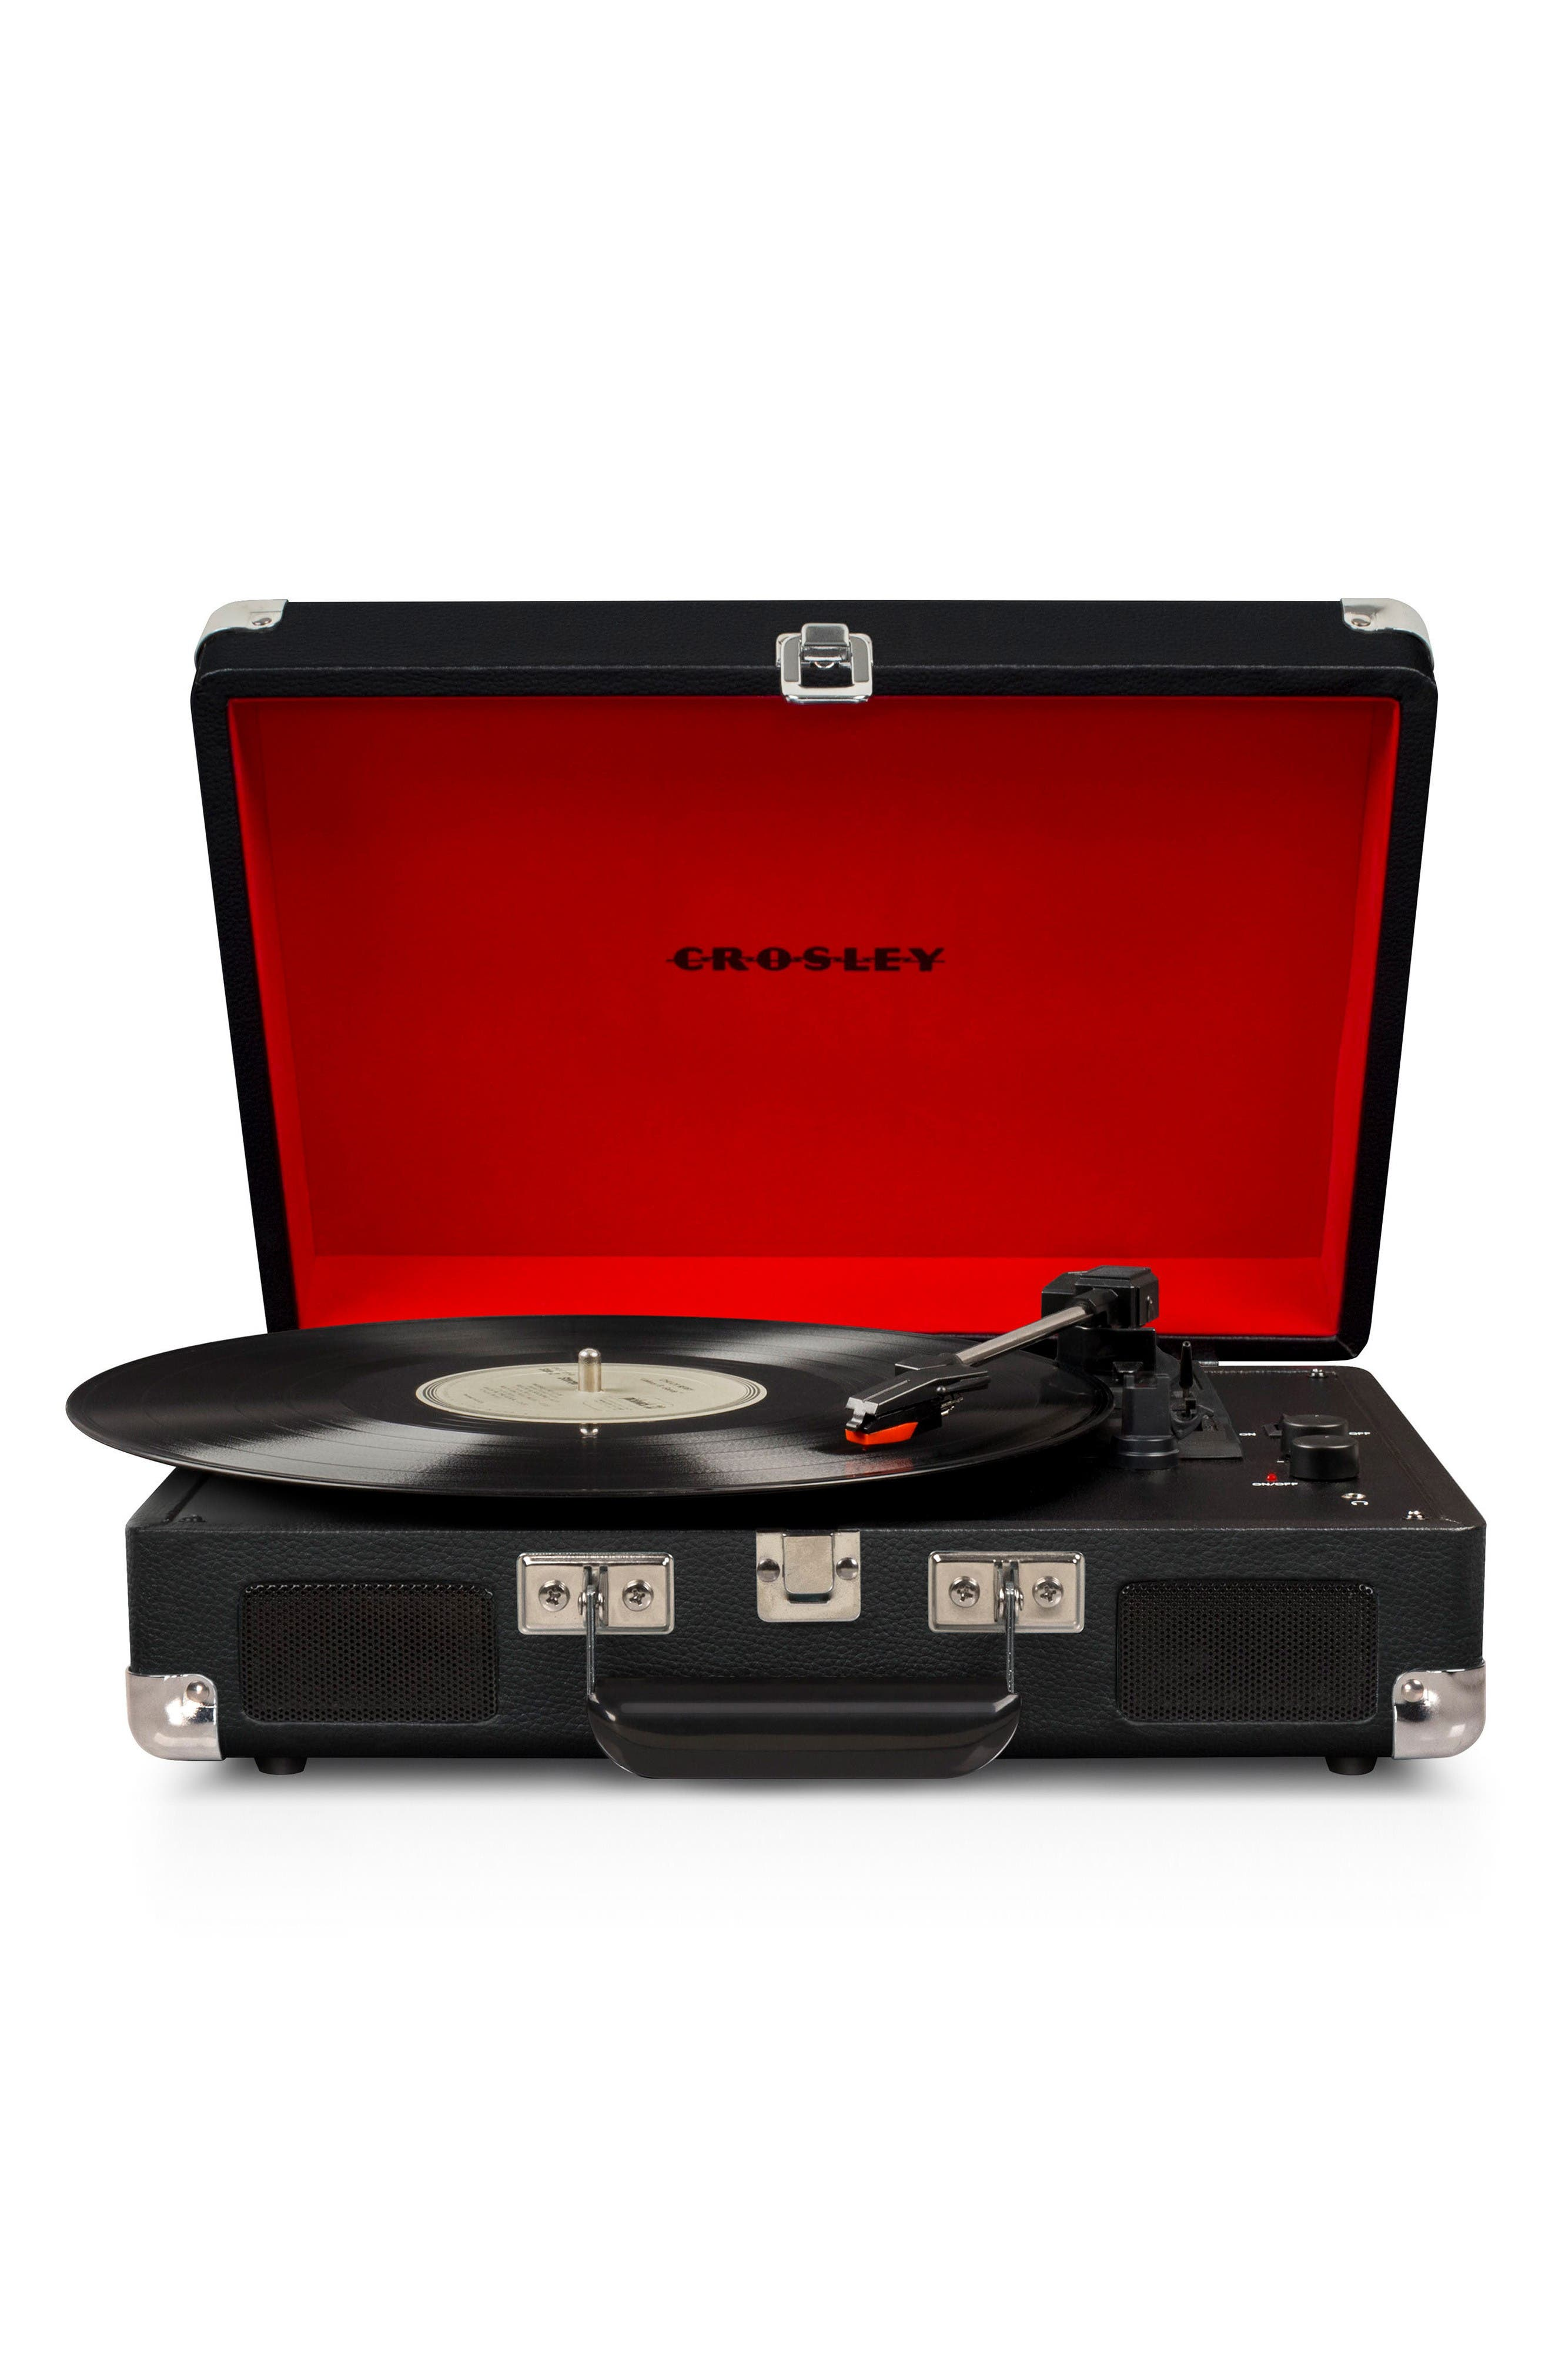 Crosley Radio Cruiser Deluxe Turntable